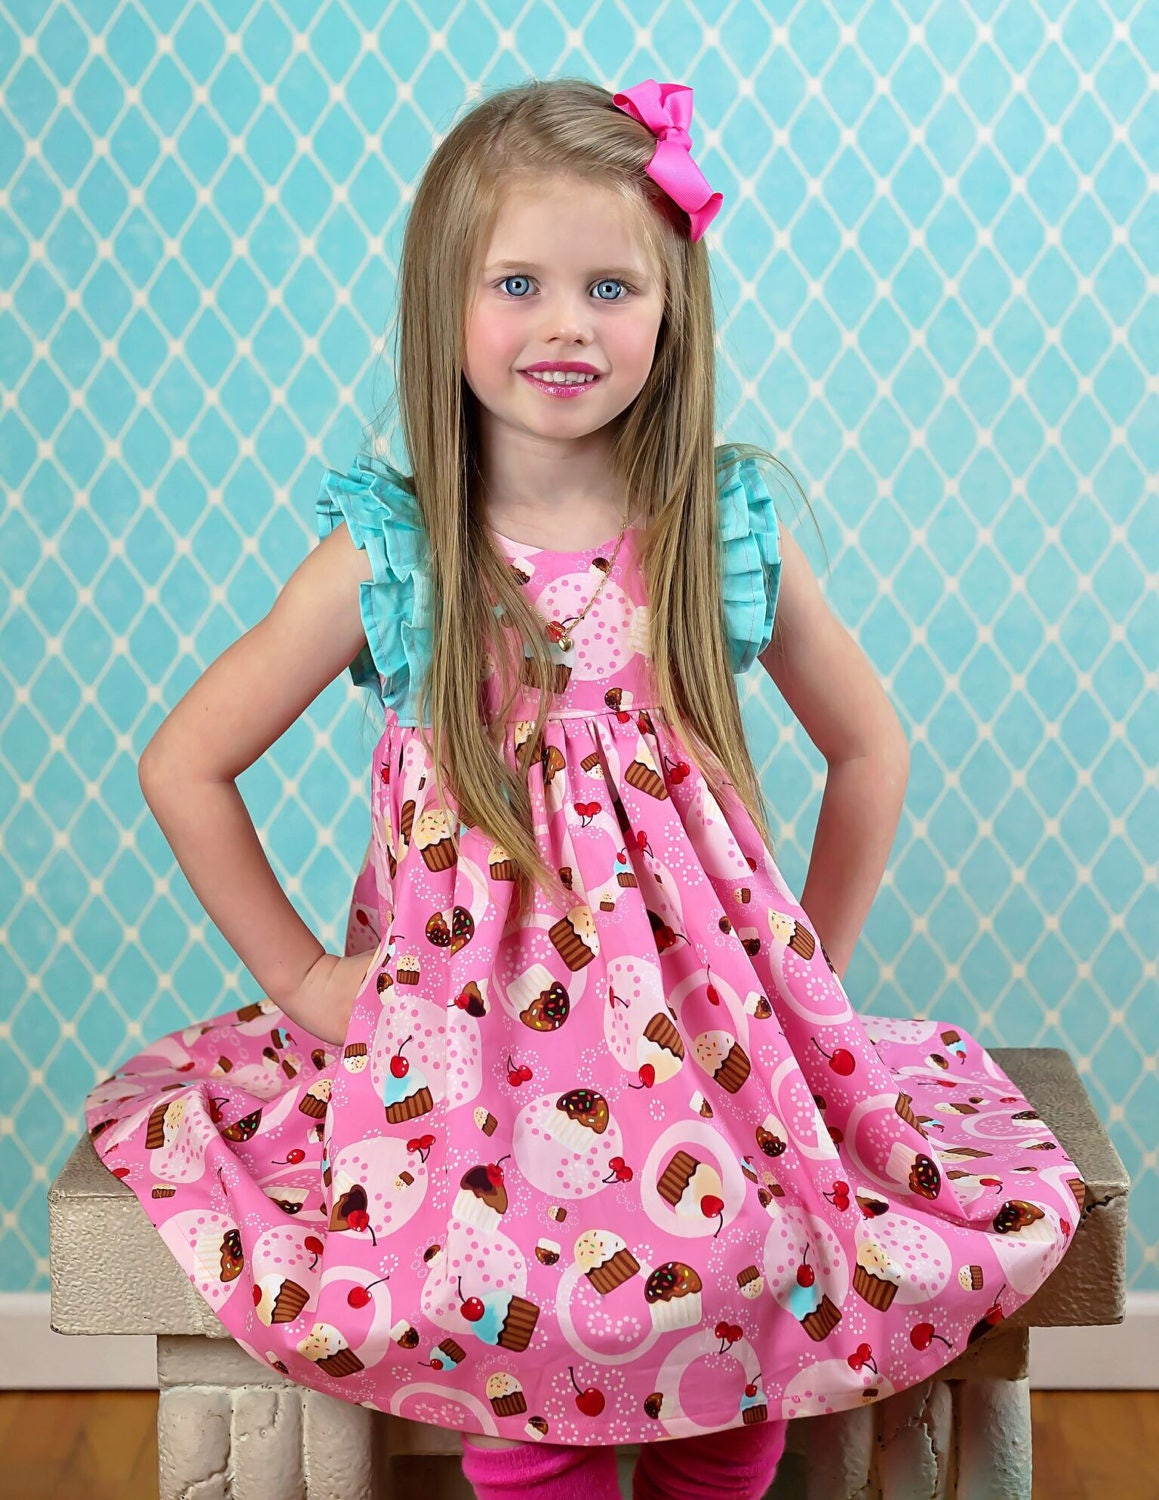 Girls Cupcake Dress - Girls Birthday Dress - Girls Party Dress ...